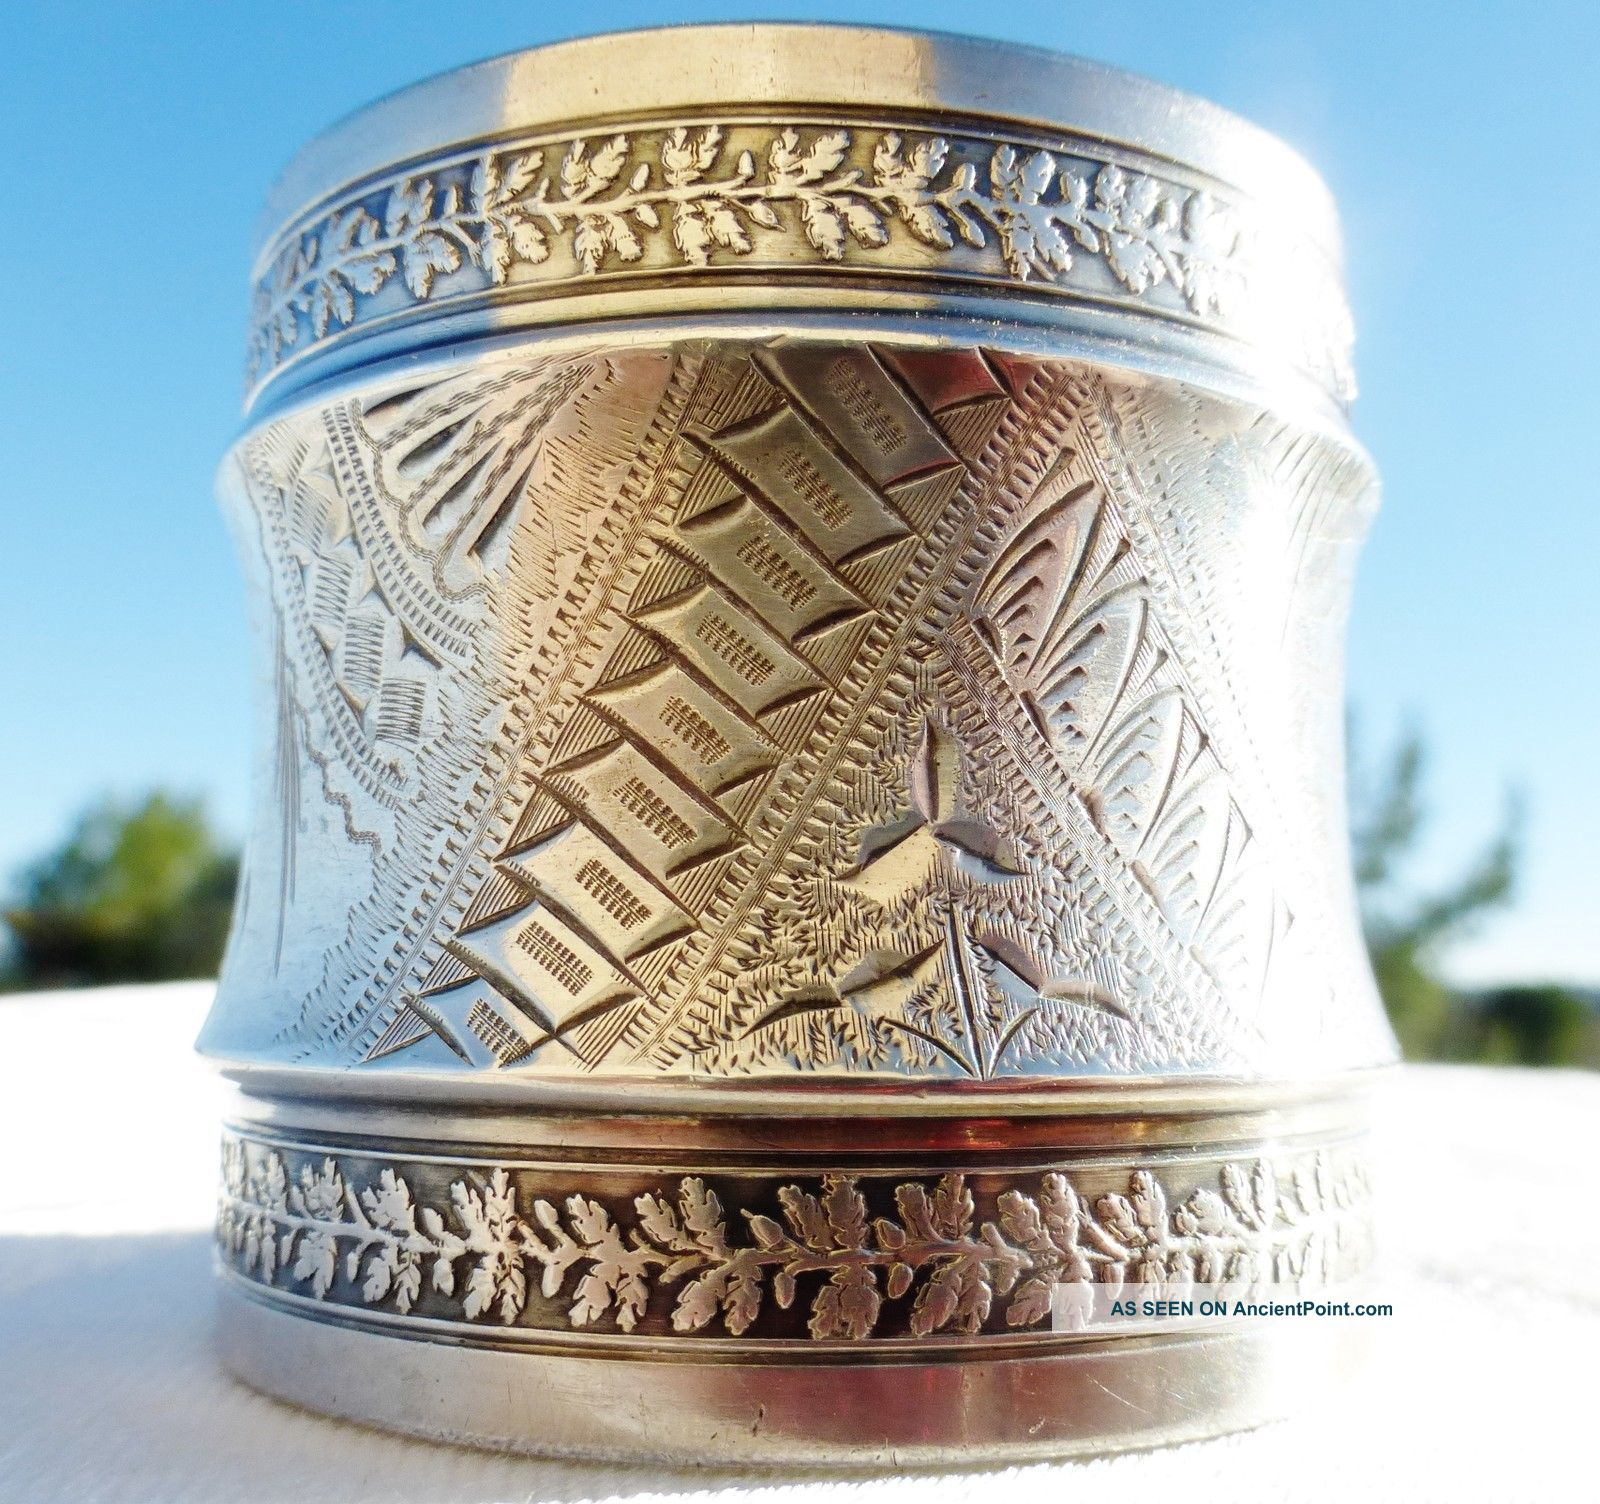 Antique 1800s Large Etched Sterling Silver Napkin Ring Gorham Napkin Rings & Clips photo